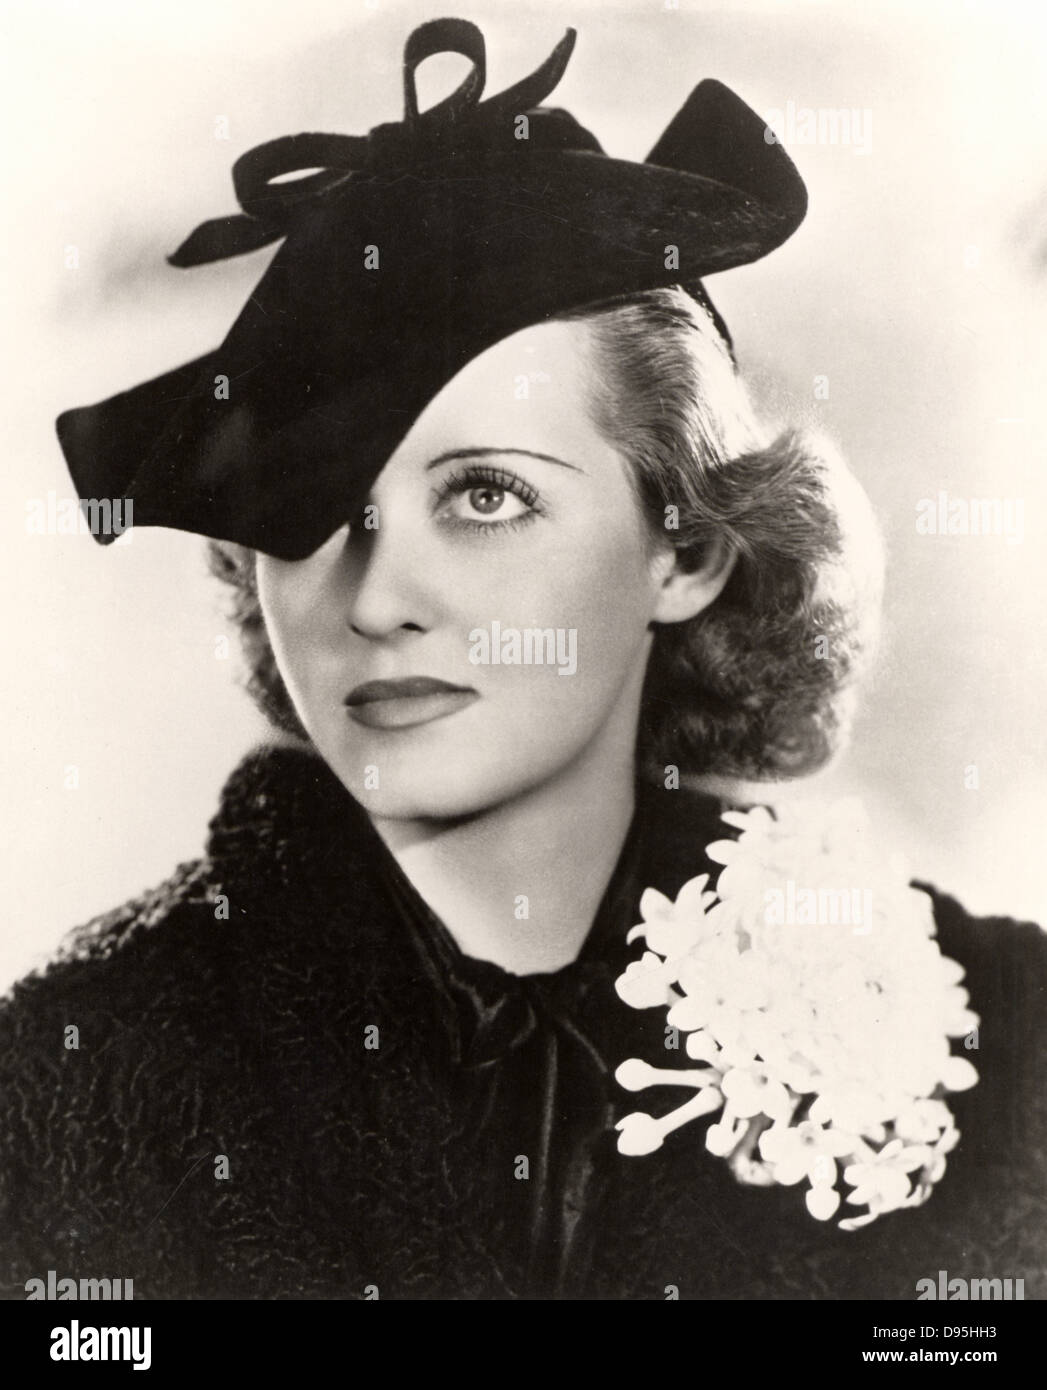 Bette Davis (1908-1989) American attrice di Hollywood e di film di star. Fotografia. Immagini Stock